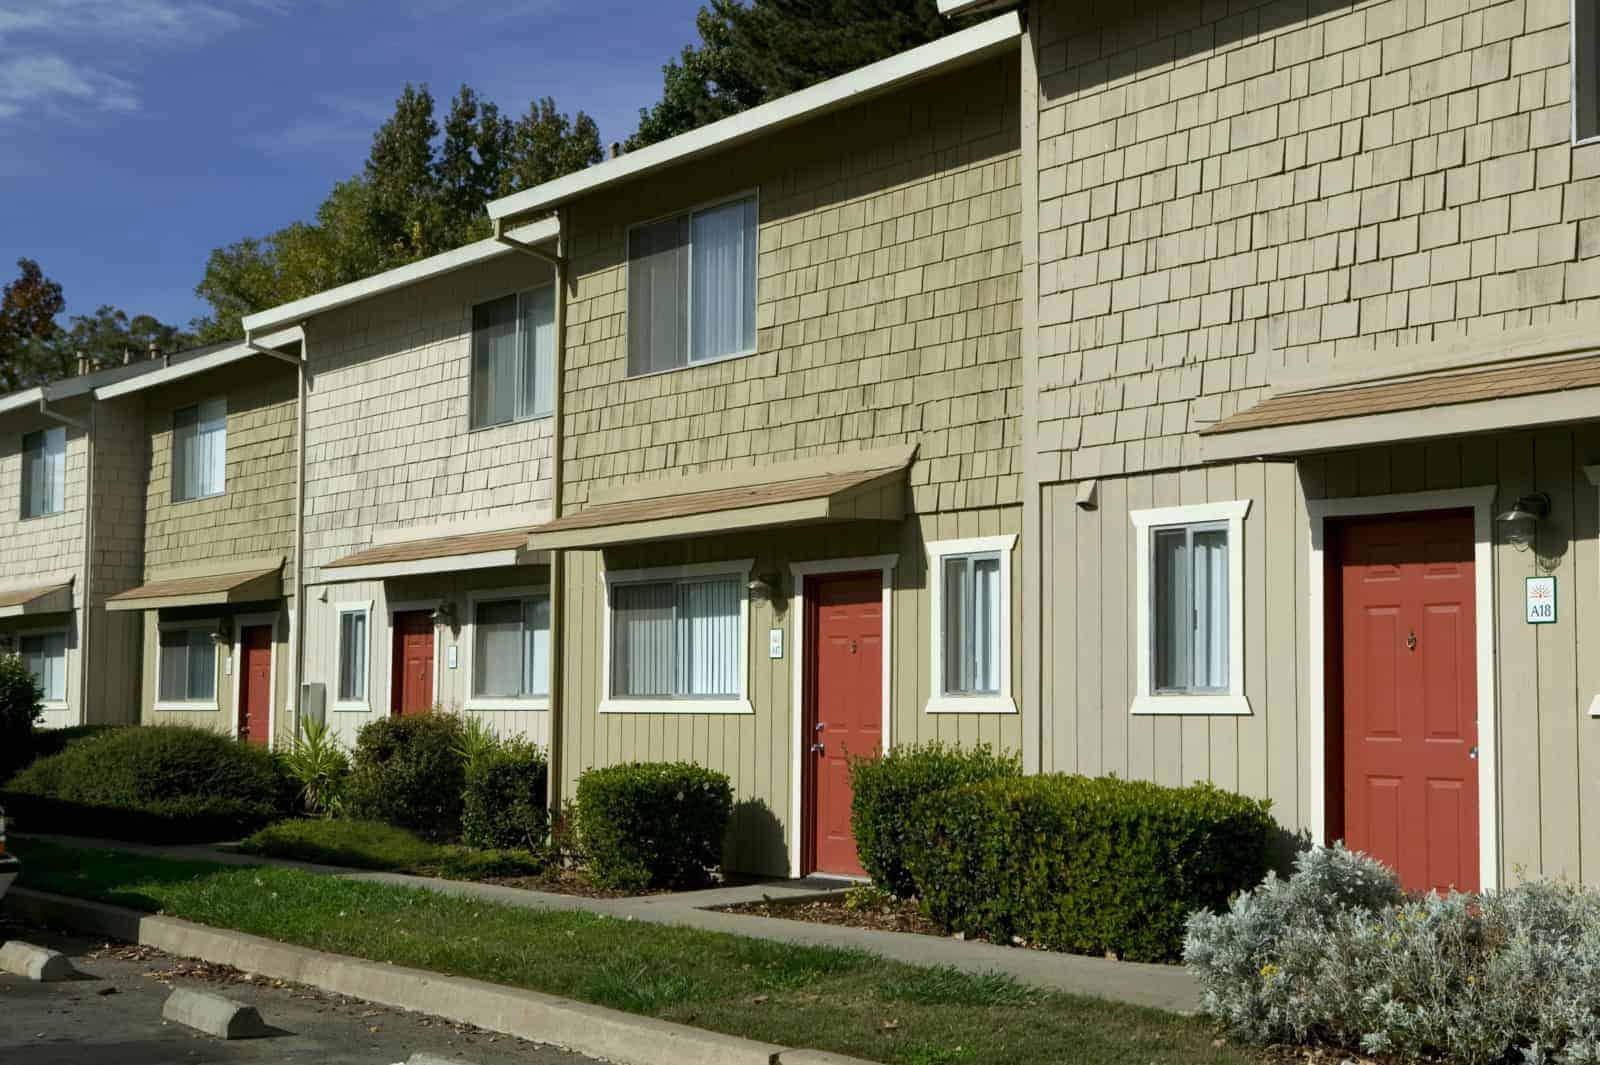 Exterior of 2 story units with red doors.